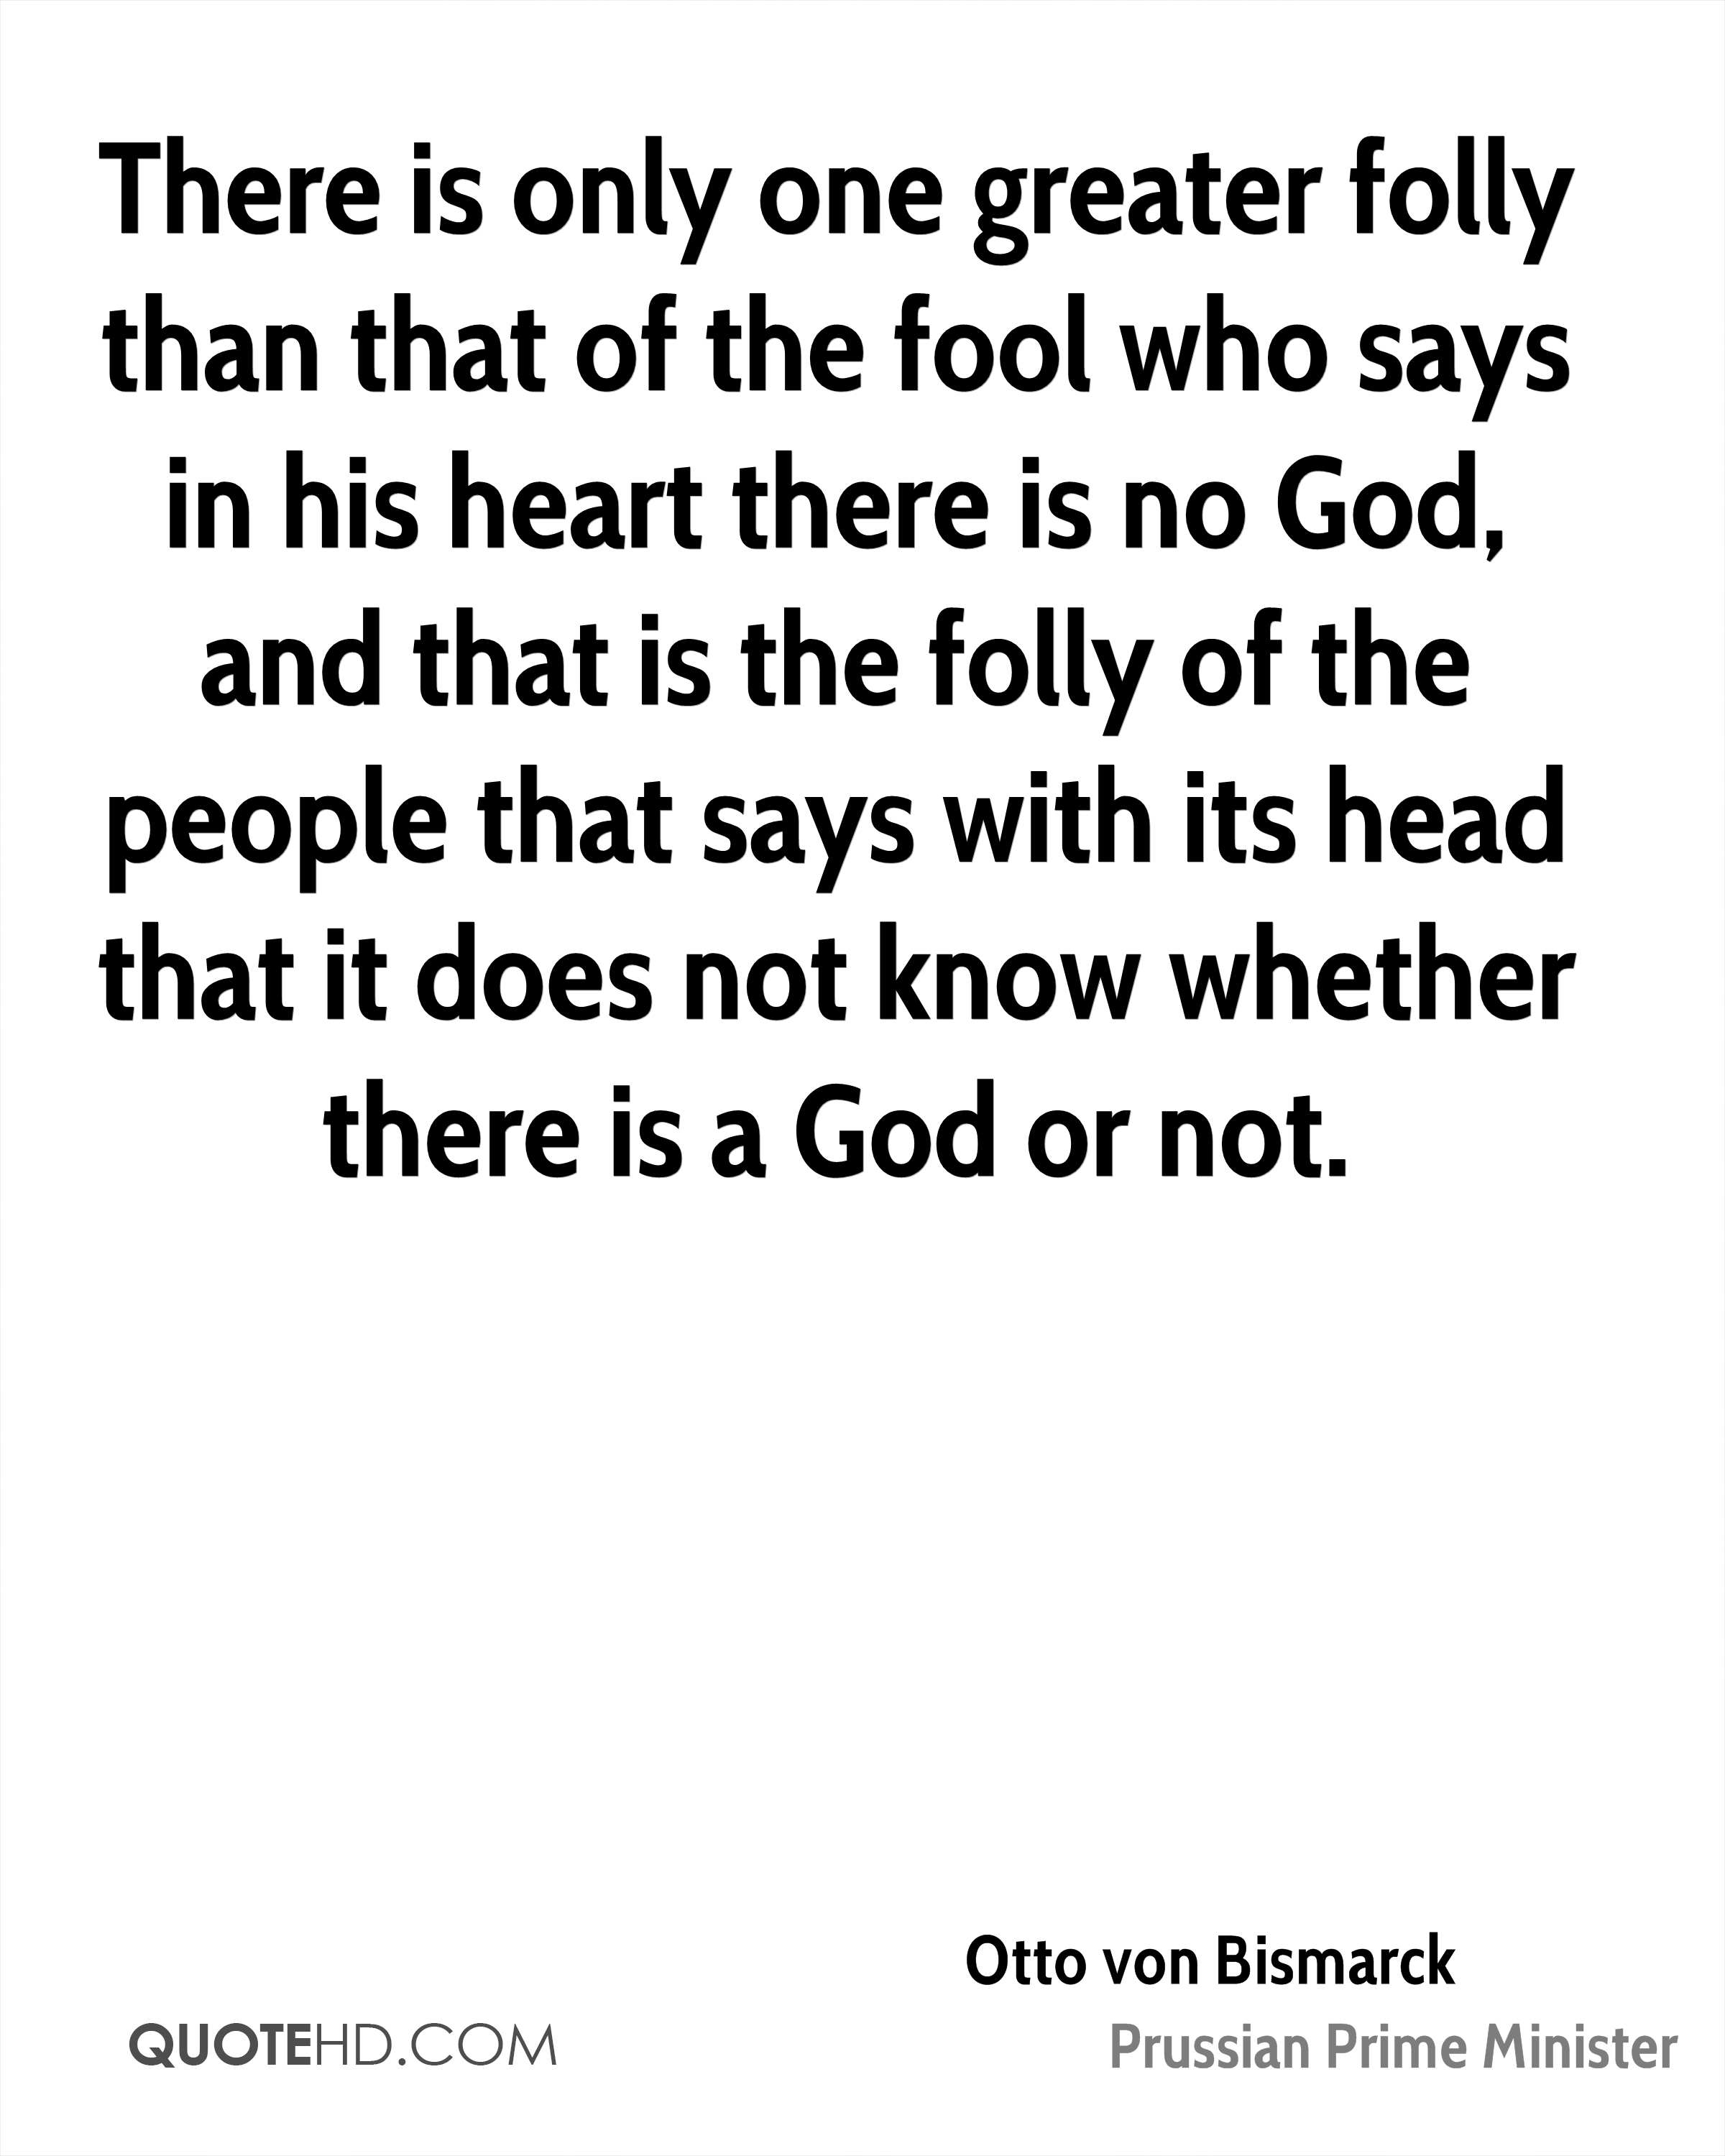 There is only one greater folly than that of the fool who says in his heart there is no God, and that is the folly of the people that says with its head that it does not know whether there is a God or not.